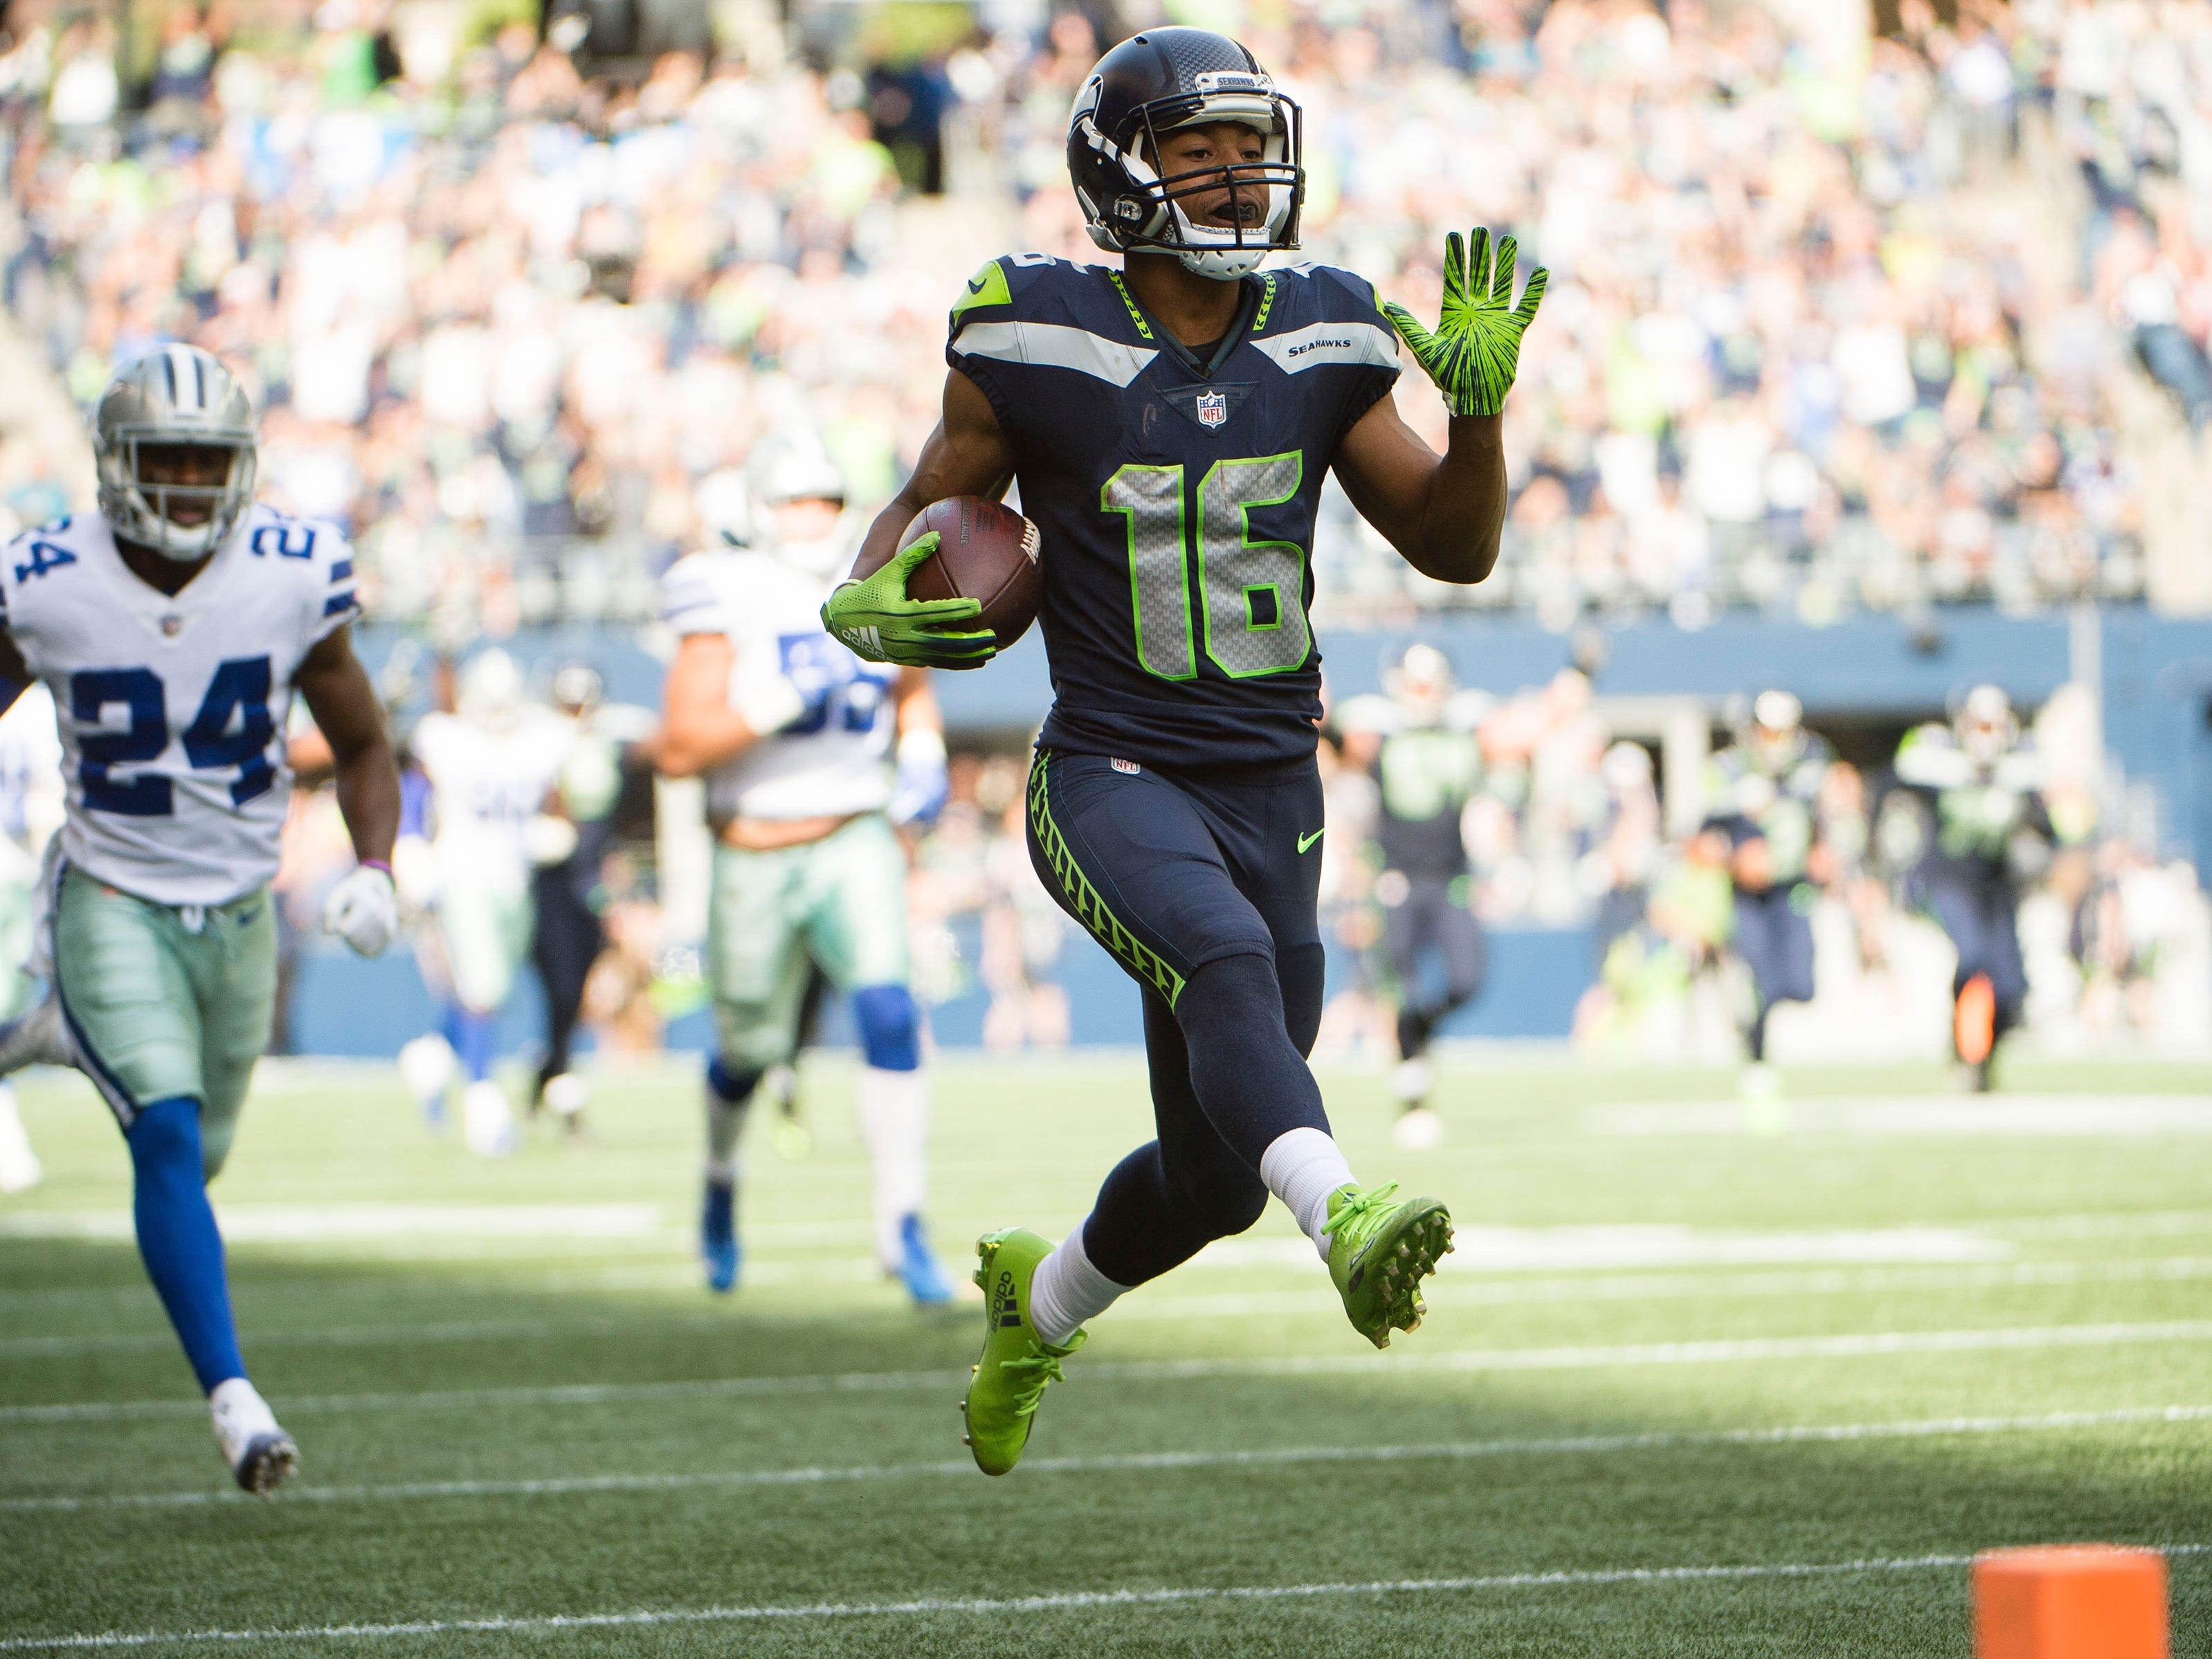 Sep 23, 2018; Seattle, WA, USA; Seattle Seahawks wide receiver Tyler Lockett (16) races past Dallas Cowboys cornerback Chidobe Awuzie (24) for a touchdown during the first half at CenturyLink Field. Mandatory Credit: Troy Wayrynen-USA TODAY Sports